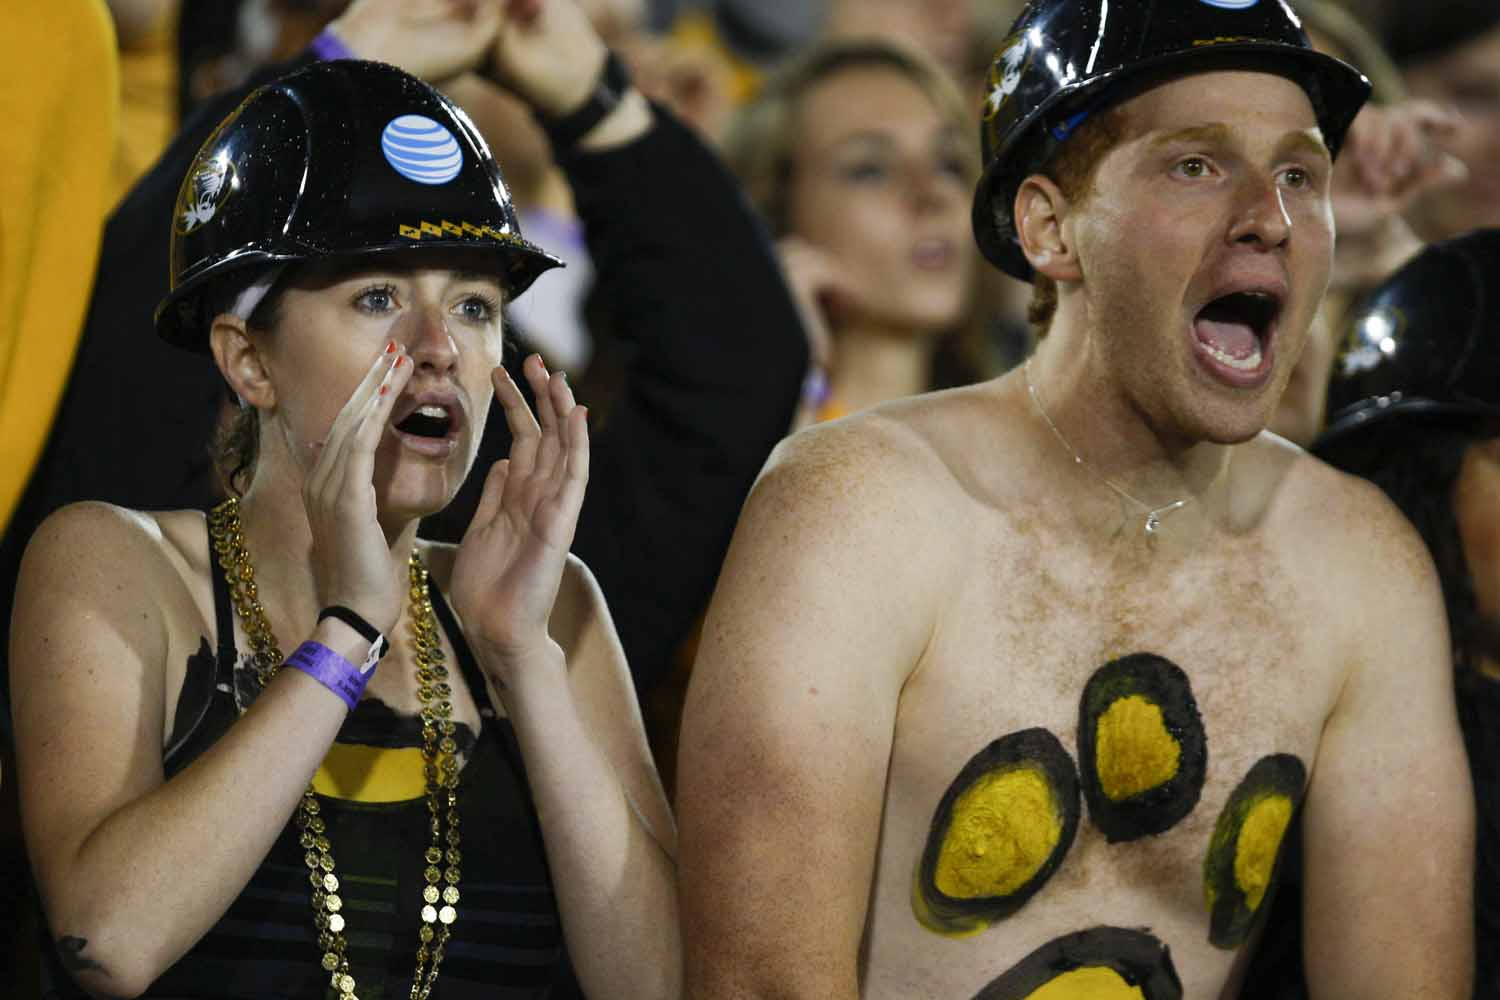 Taylor Lower, left, and Ryan Levi, right, cheer for the Tigers during the beginning of the first quarter of the Mizzou vs. Mississippi State game, Thursday evening. The two sat front row in Tiger's Lair. Photo by Tanzi Propst.